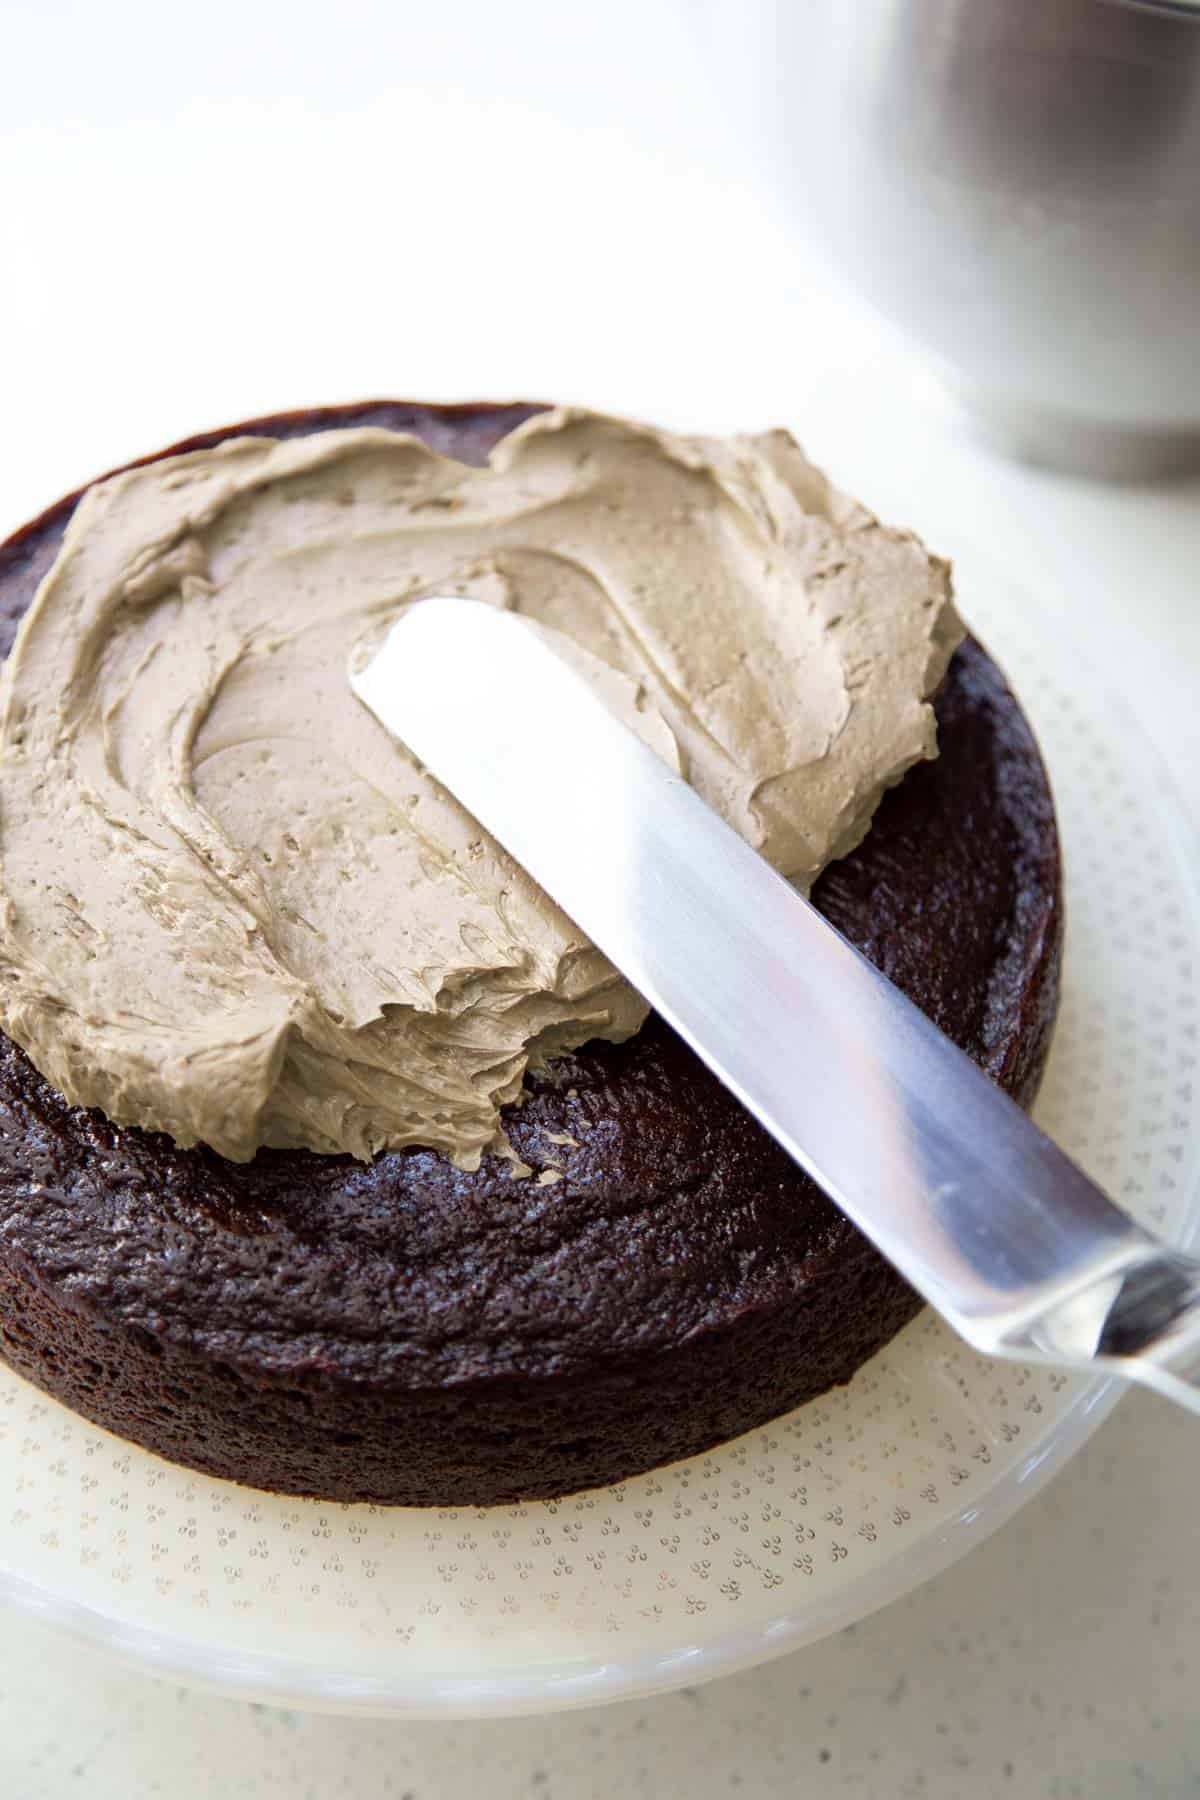 Frosting is being spread on a layer of chocolate cake